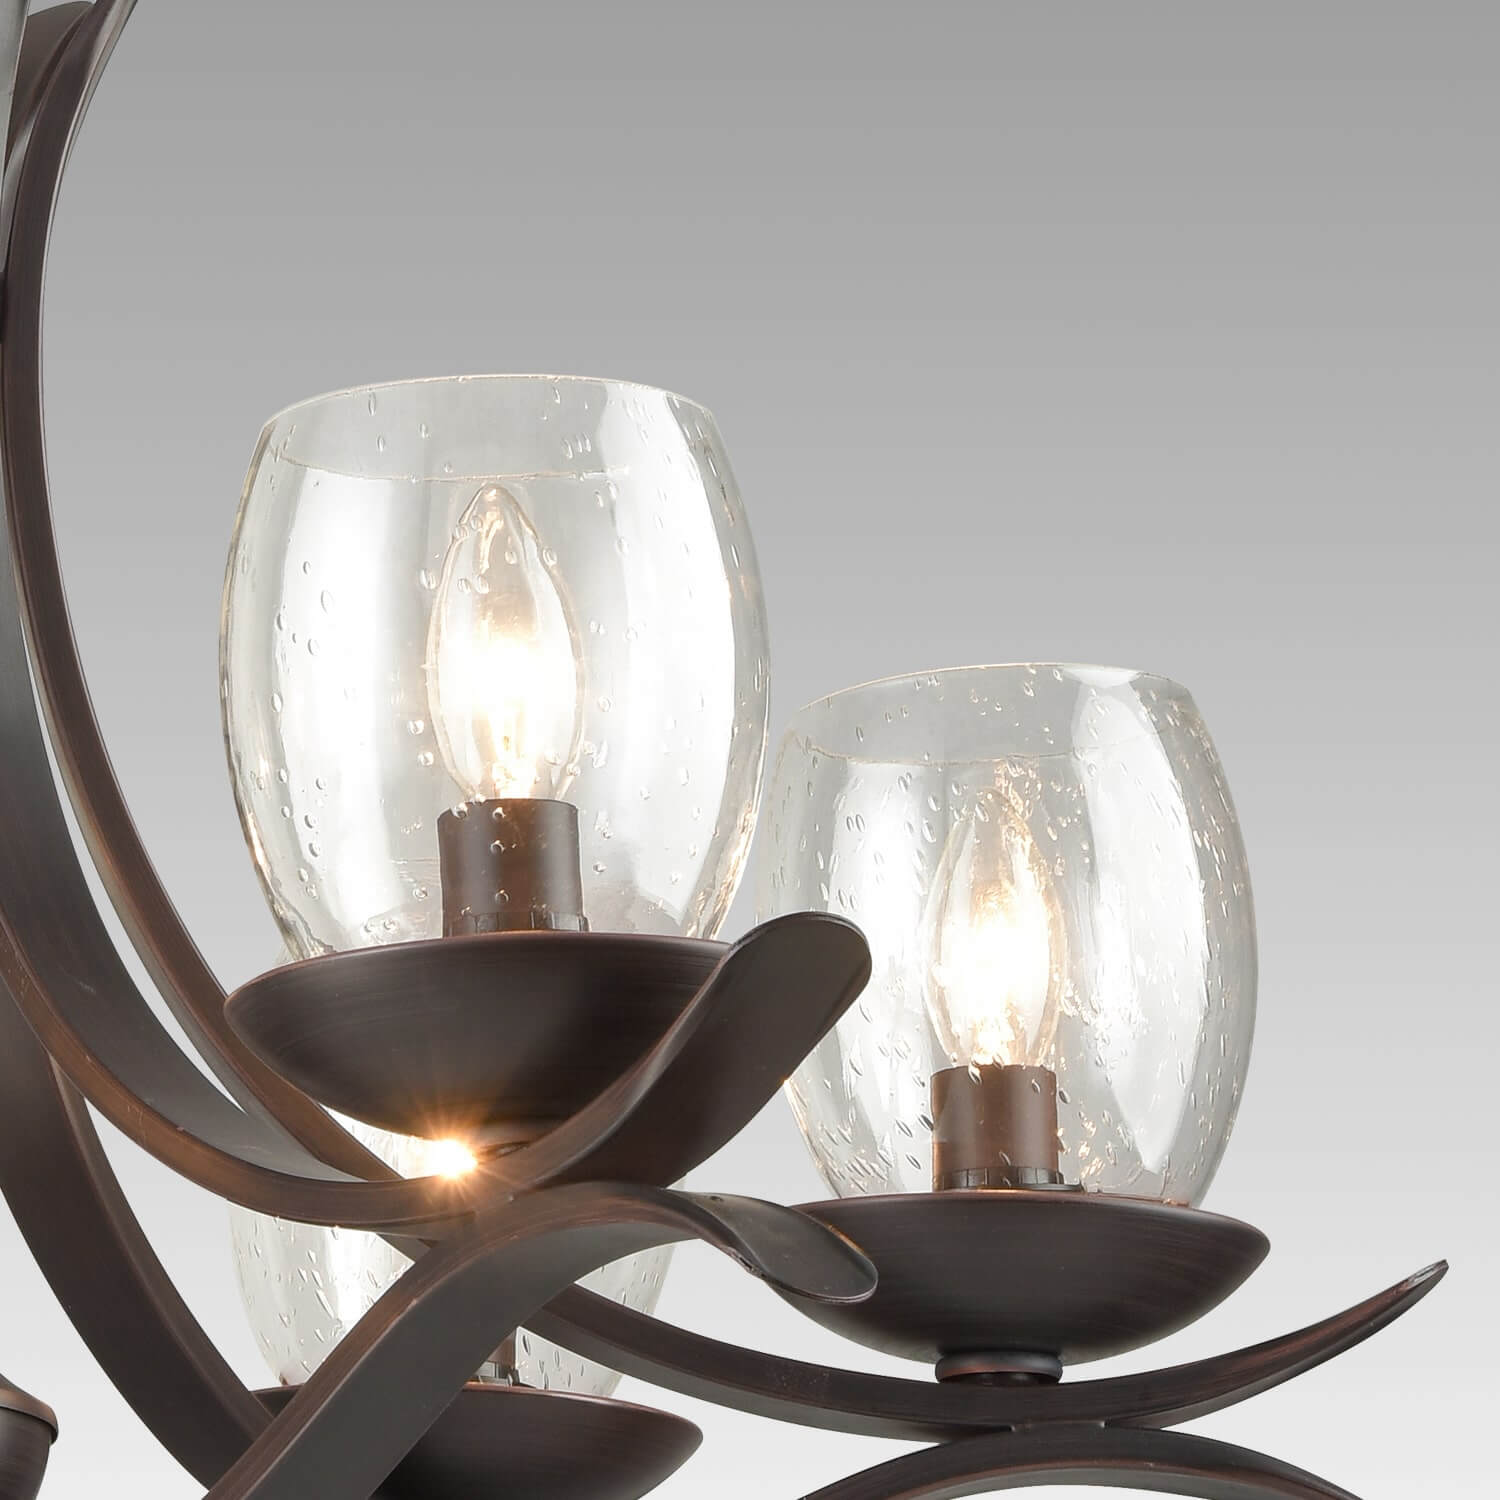 Rustic Bronze Dining Room Chandelier with Seeded Glass - 6 Light